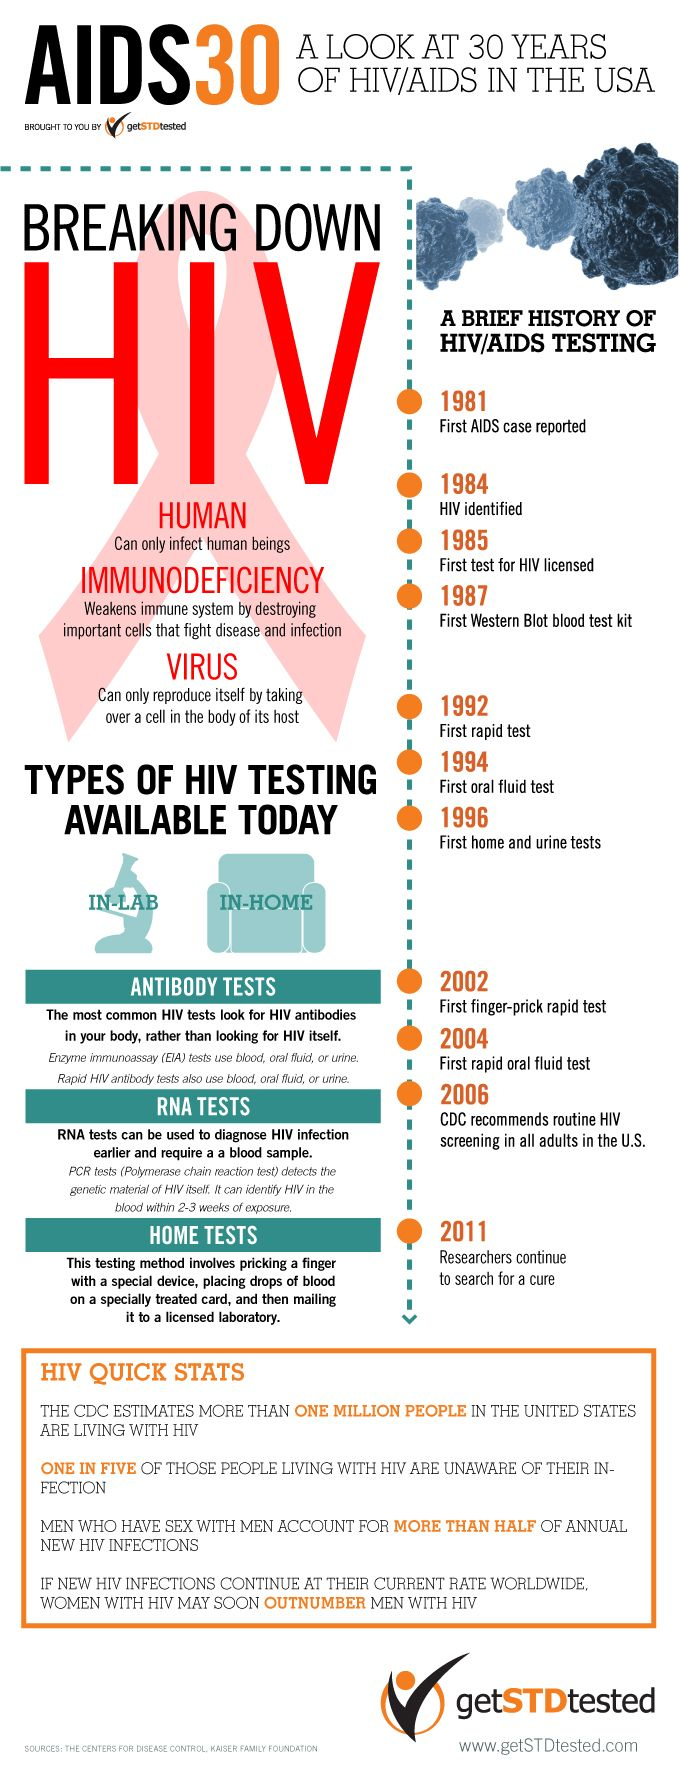 Some Facts about HIV/AIDS: To date around 65 million people have been infected with HIV and AIDS has killed more than 25 million people since it was f